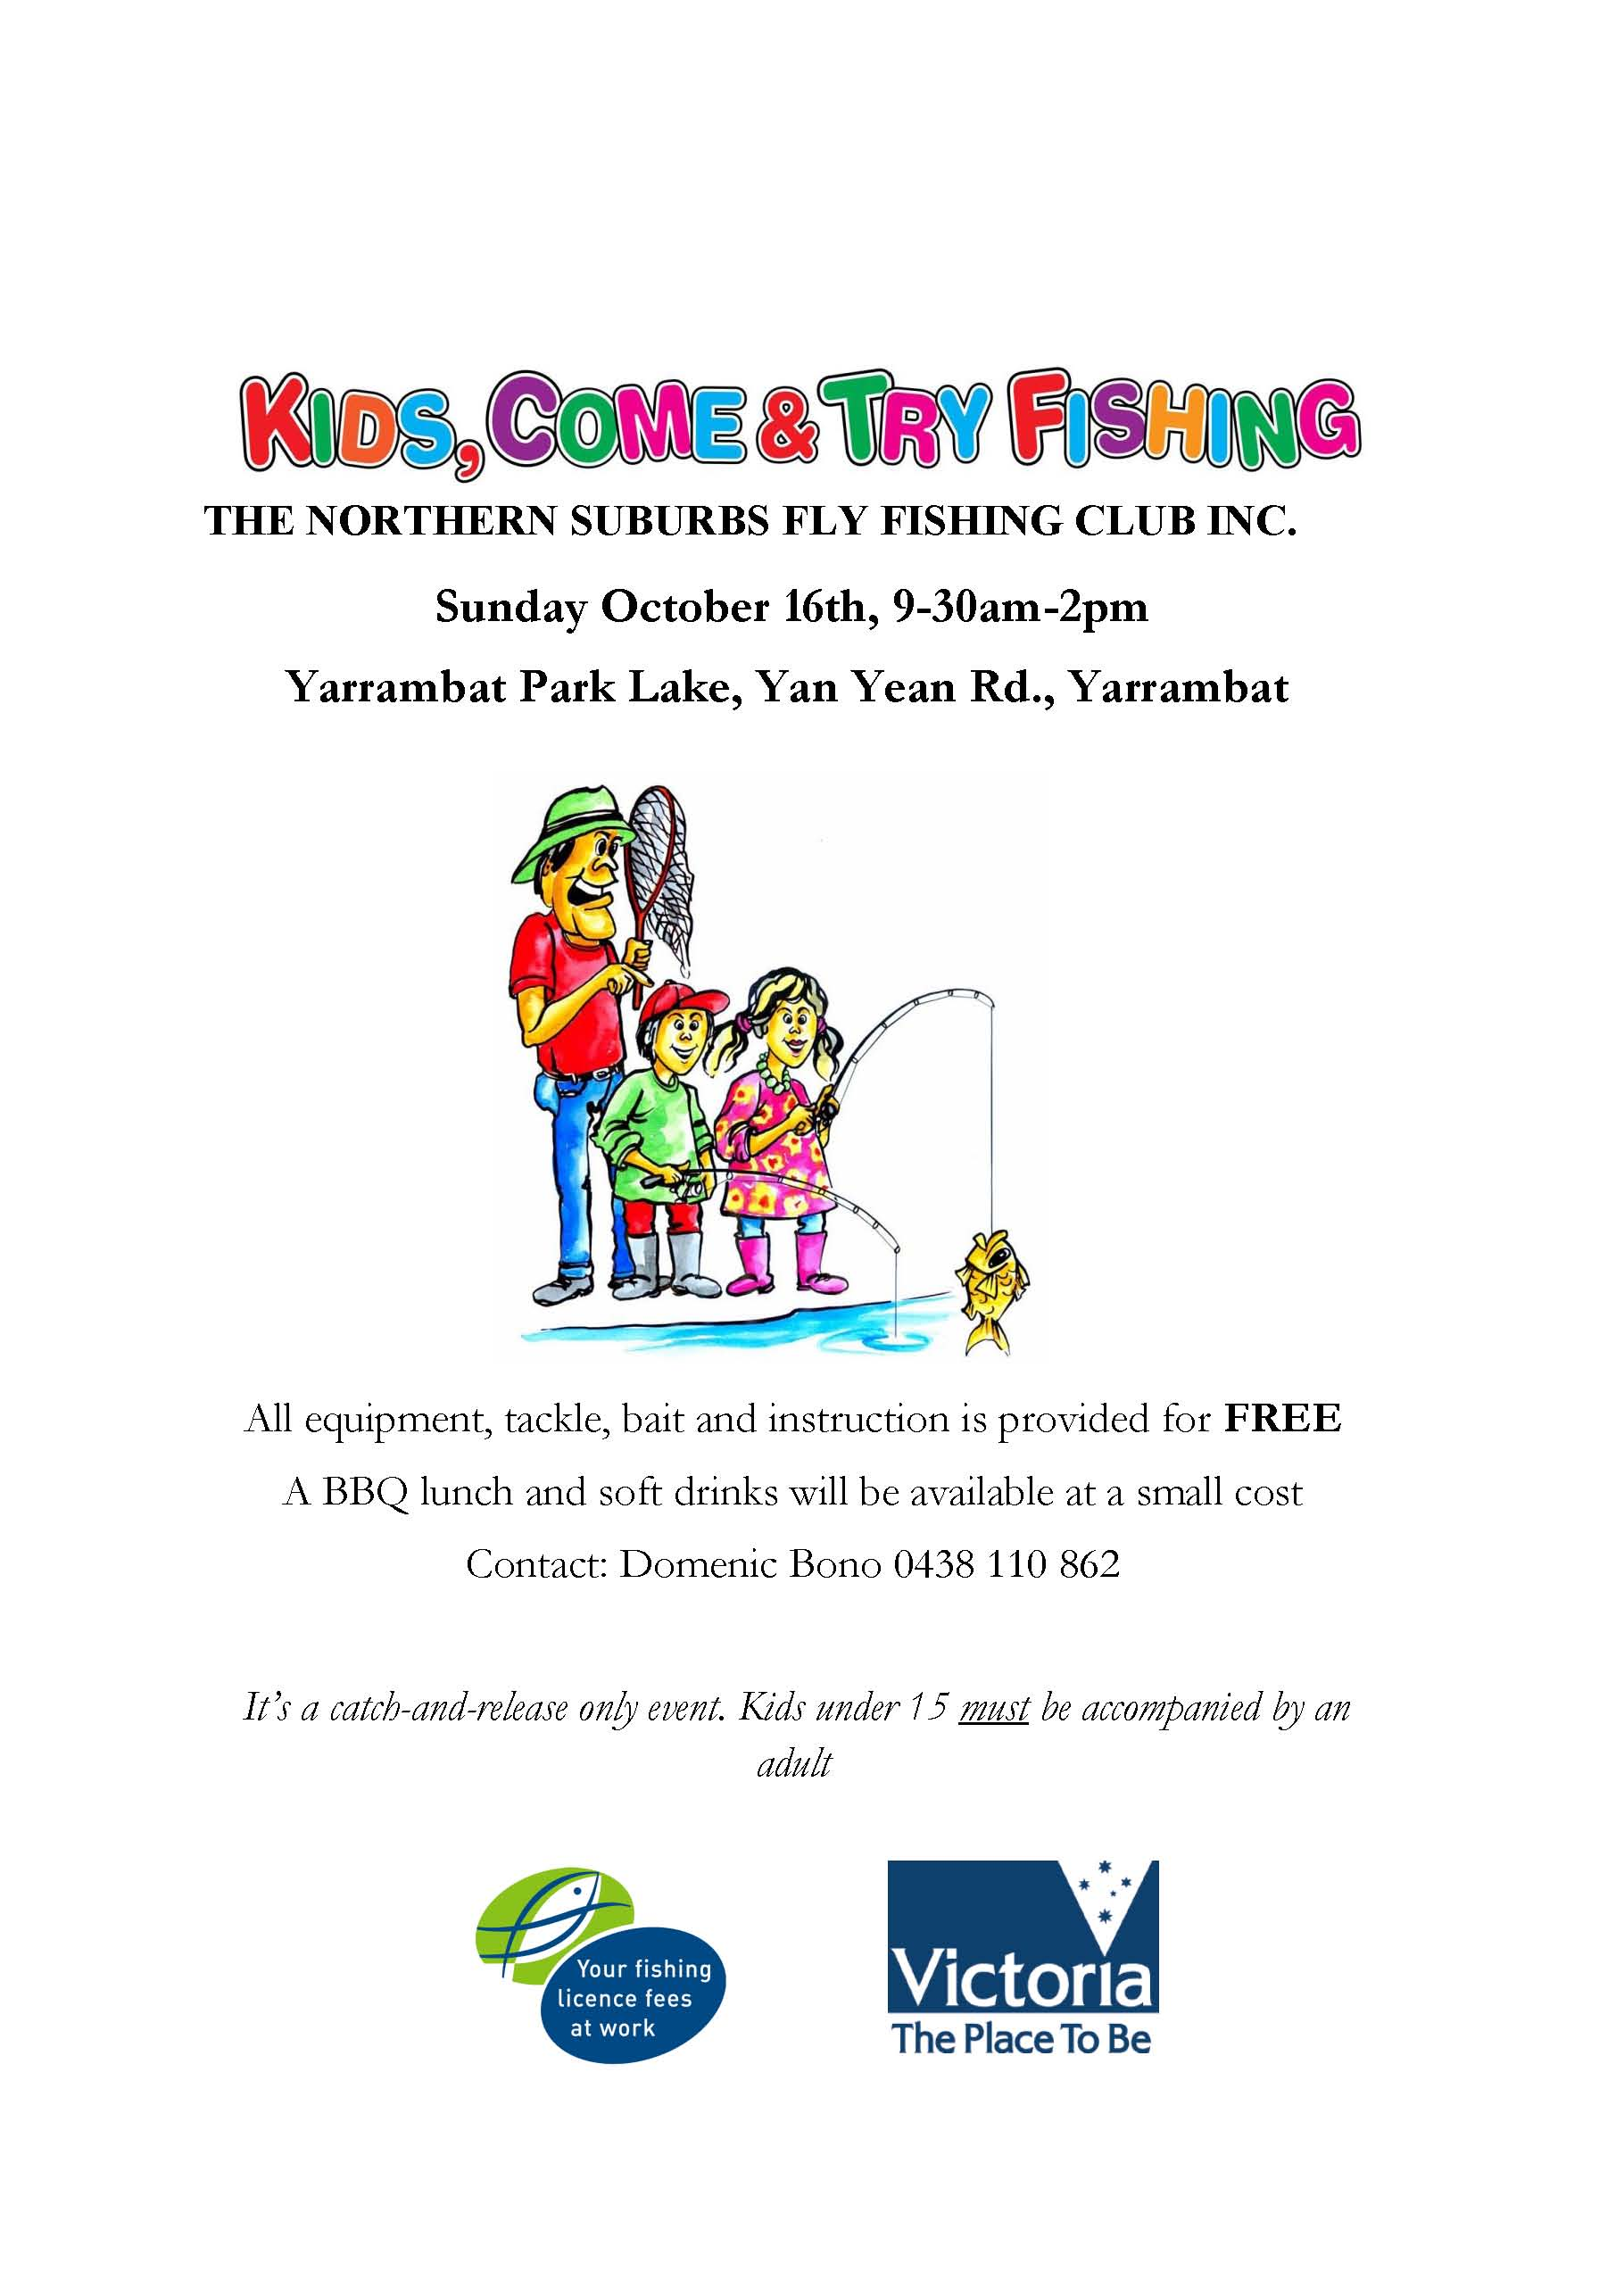 1609THE NORTHERN SUBURBS FLY FISHING CLUB INC_KIDS COME AND TRY FISHING DAY.jpg